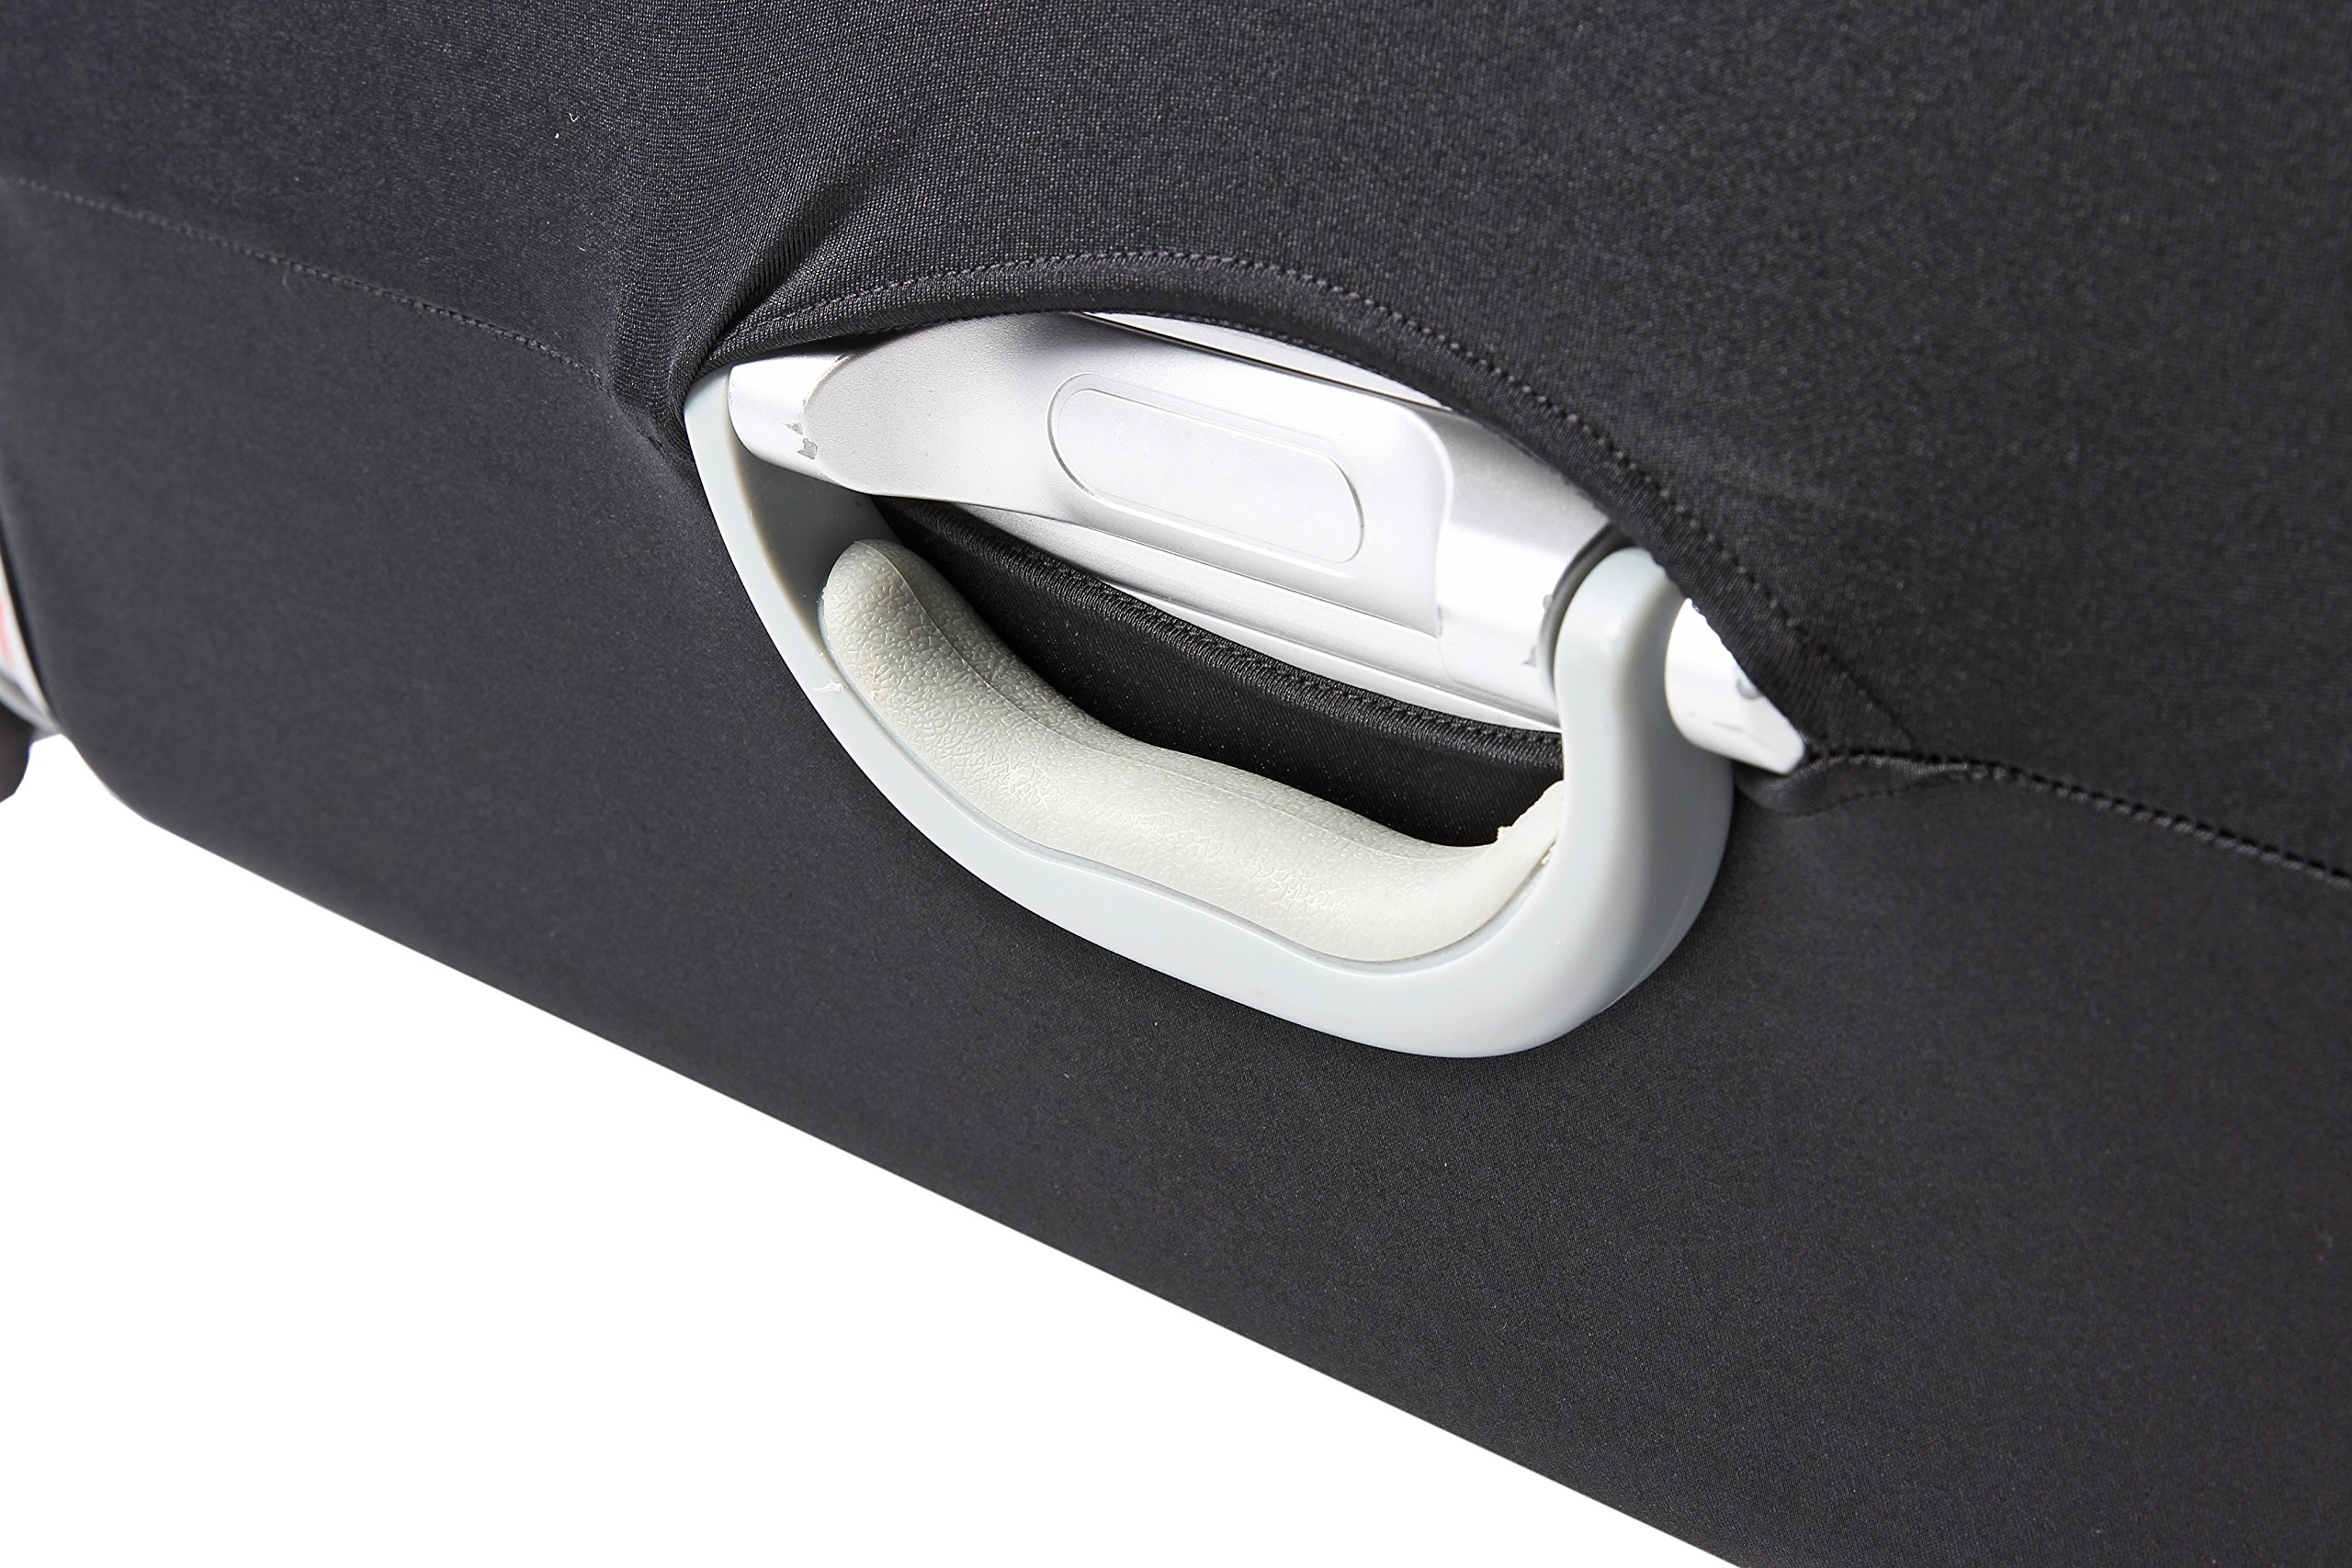 Travel Luggage Protective Cover - Stretchable Suitcase Protector Case, Black, 26 Inches by Juvale (Image #7)